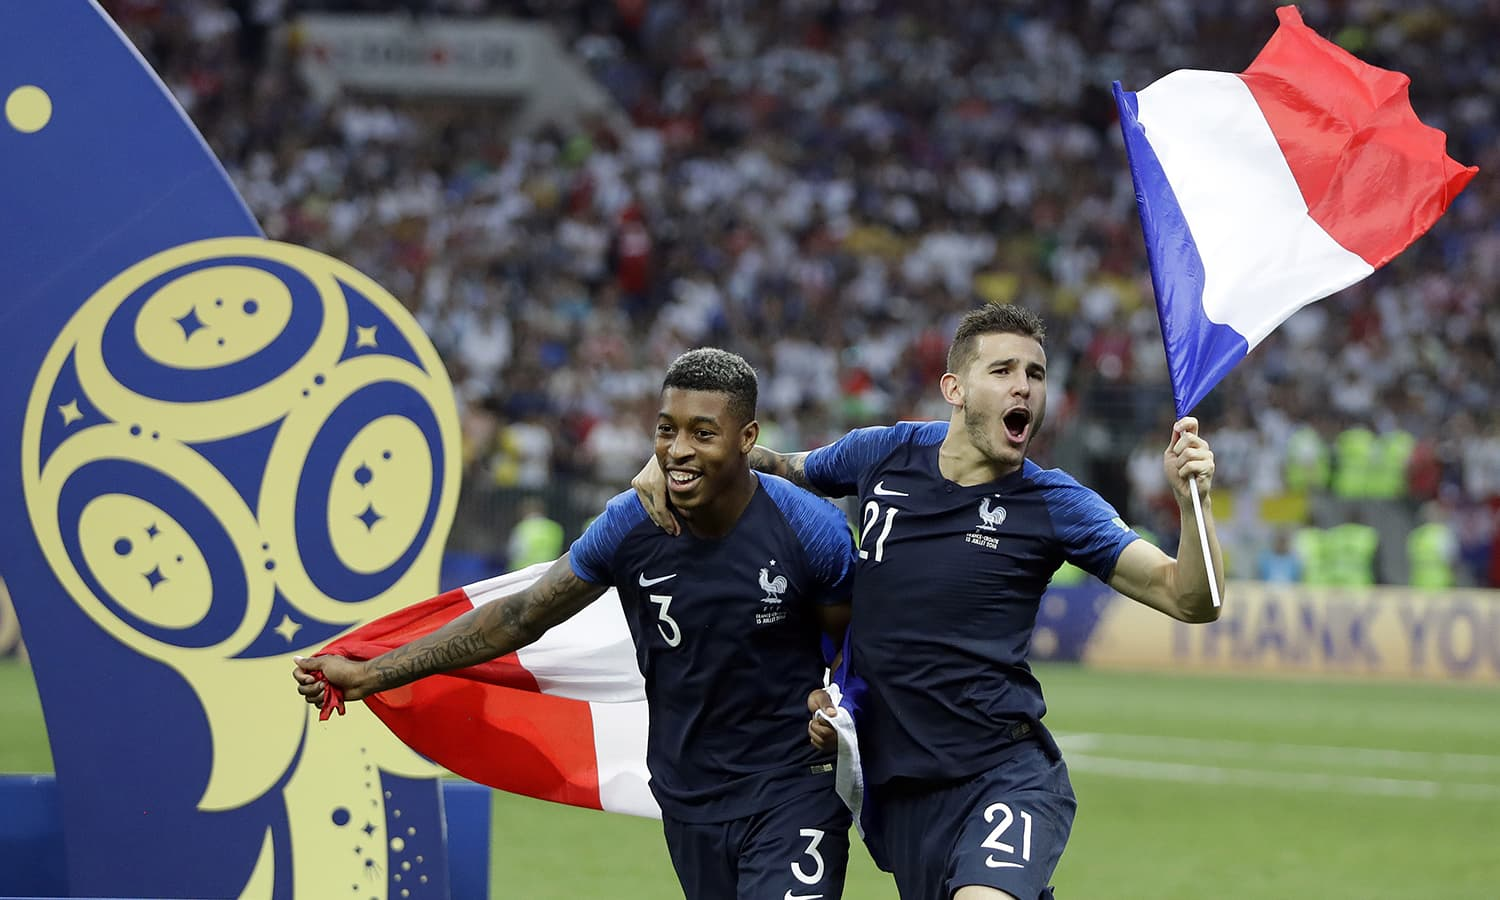 France's Presnel Kimpembe and Lucas Hernandez celebrate after the final match between France and Croatia. — AP